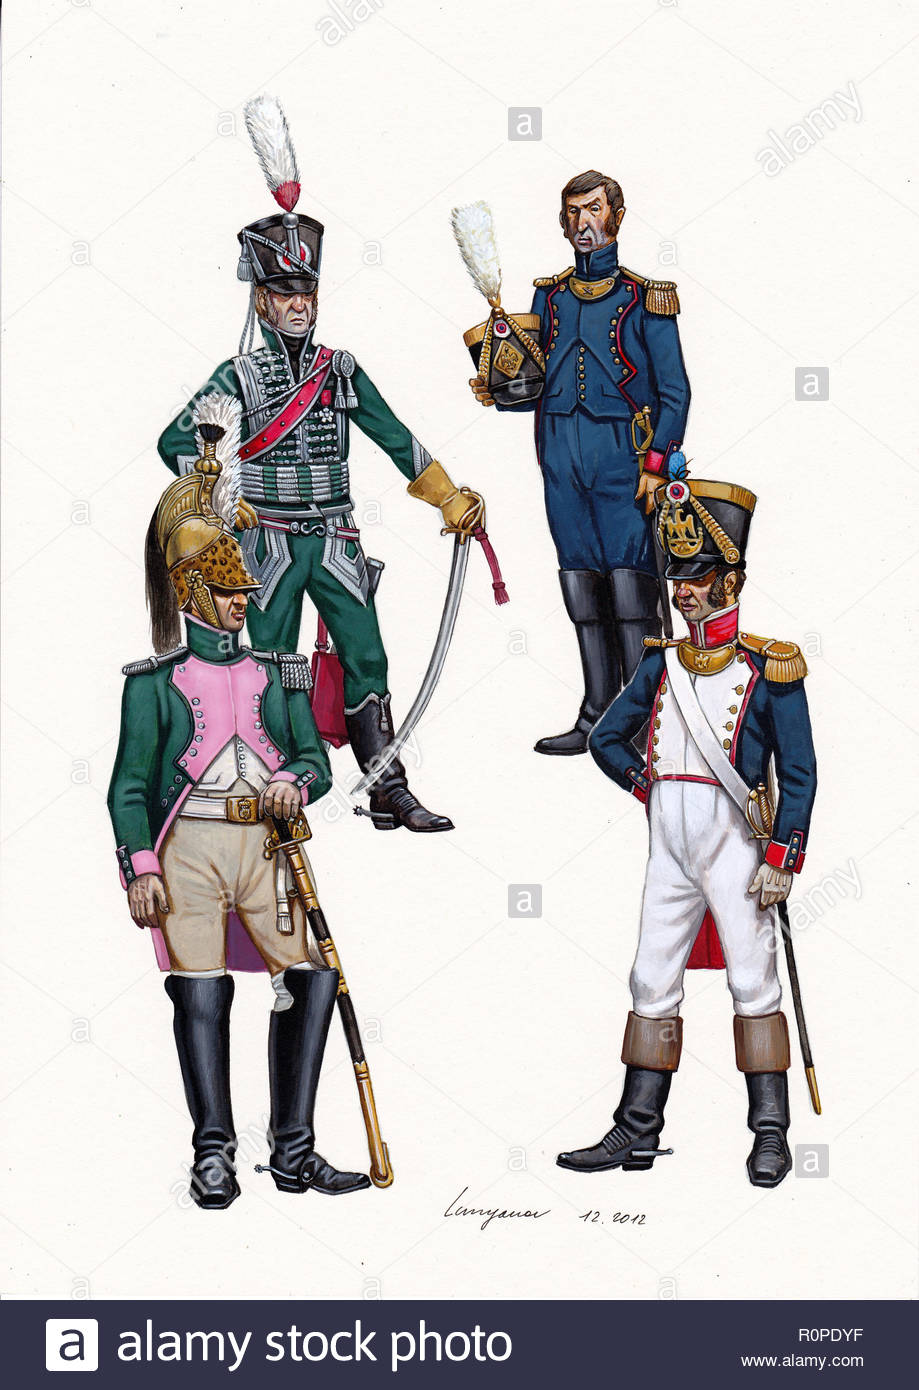 Battalion Commanders 1804 1812 Stock Photo In 2020 Napoleonic Wars American Revolutionary War Napoleon